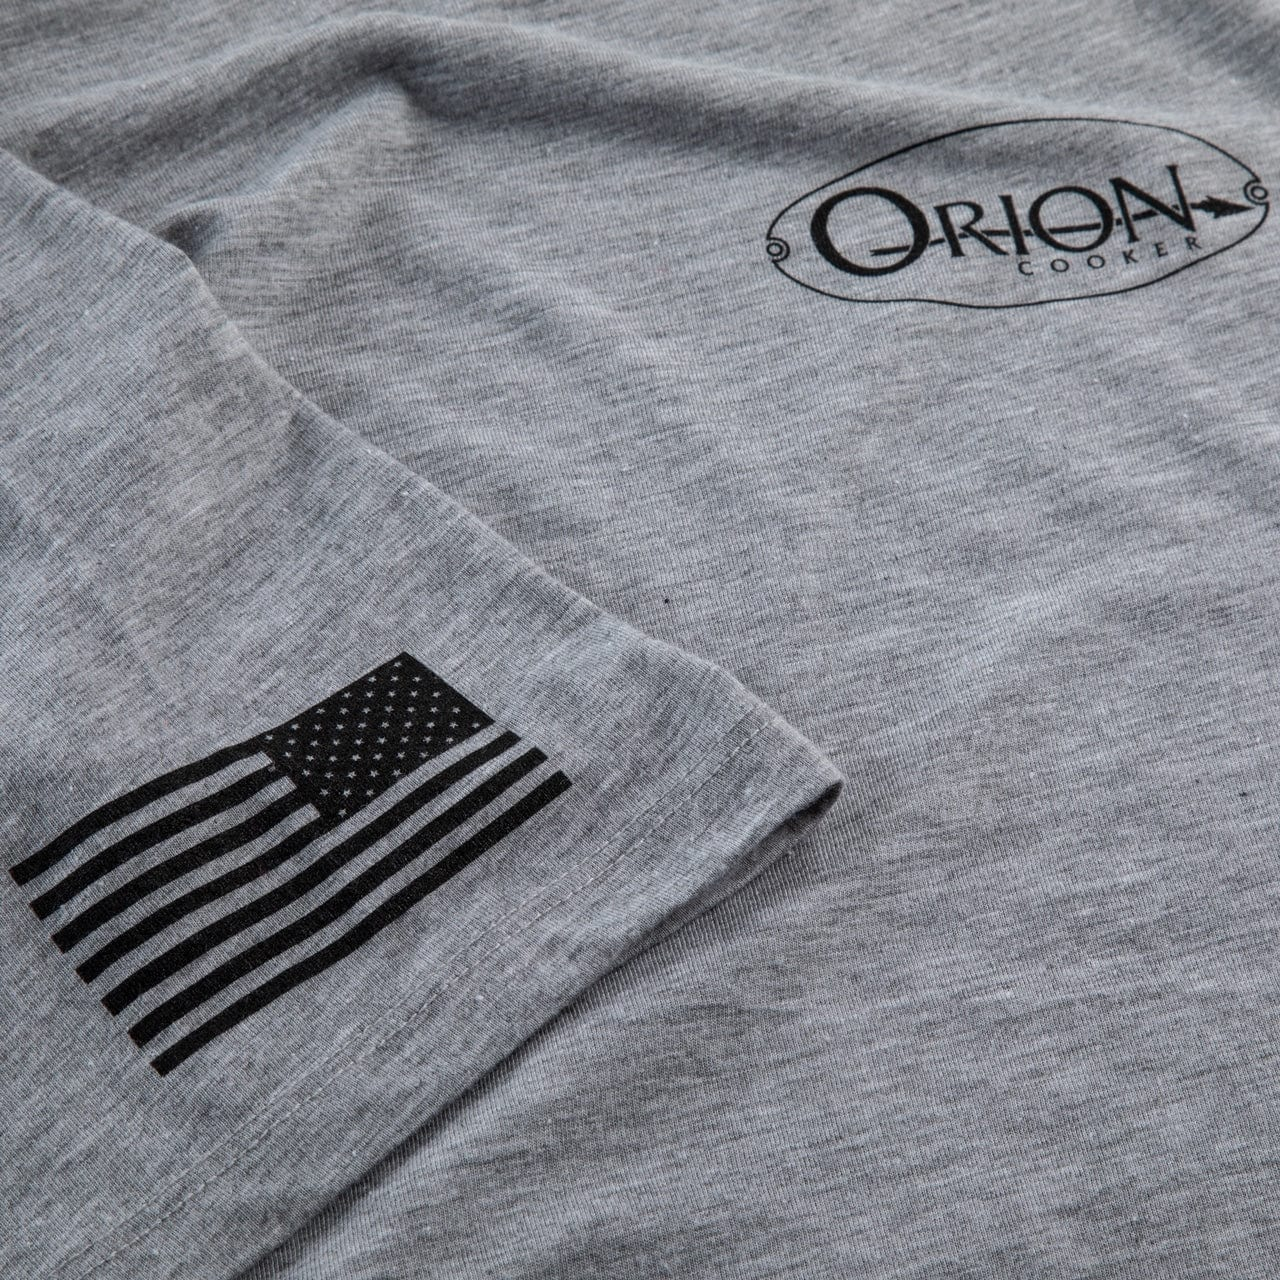 Tri Blend Orion Cooker T-shirts